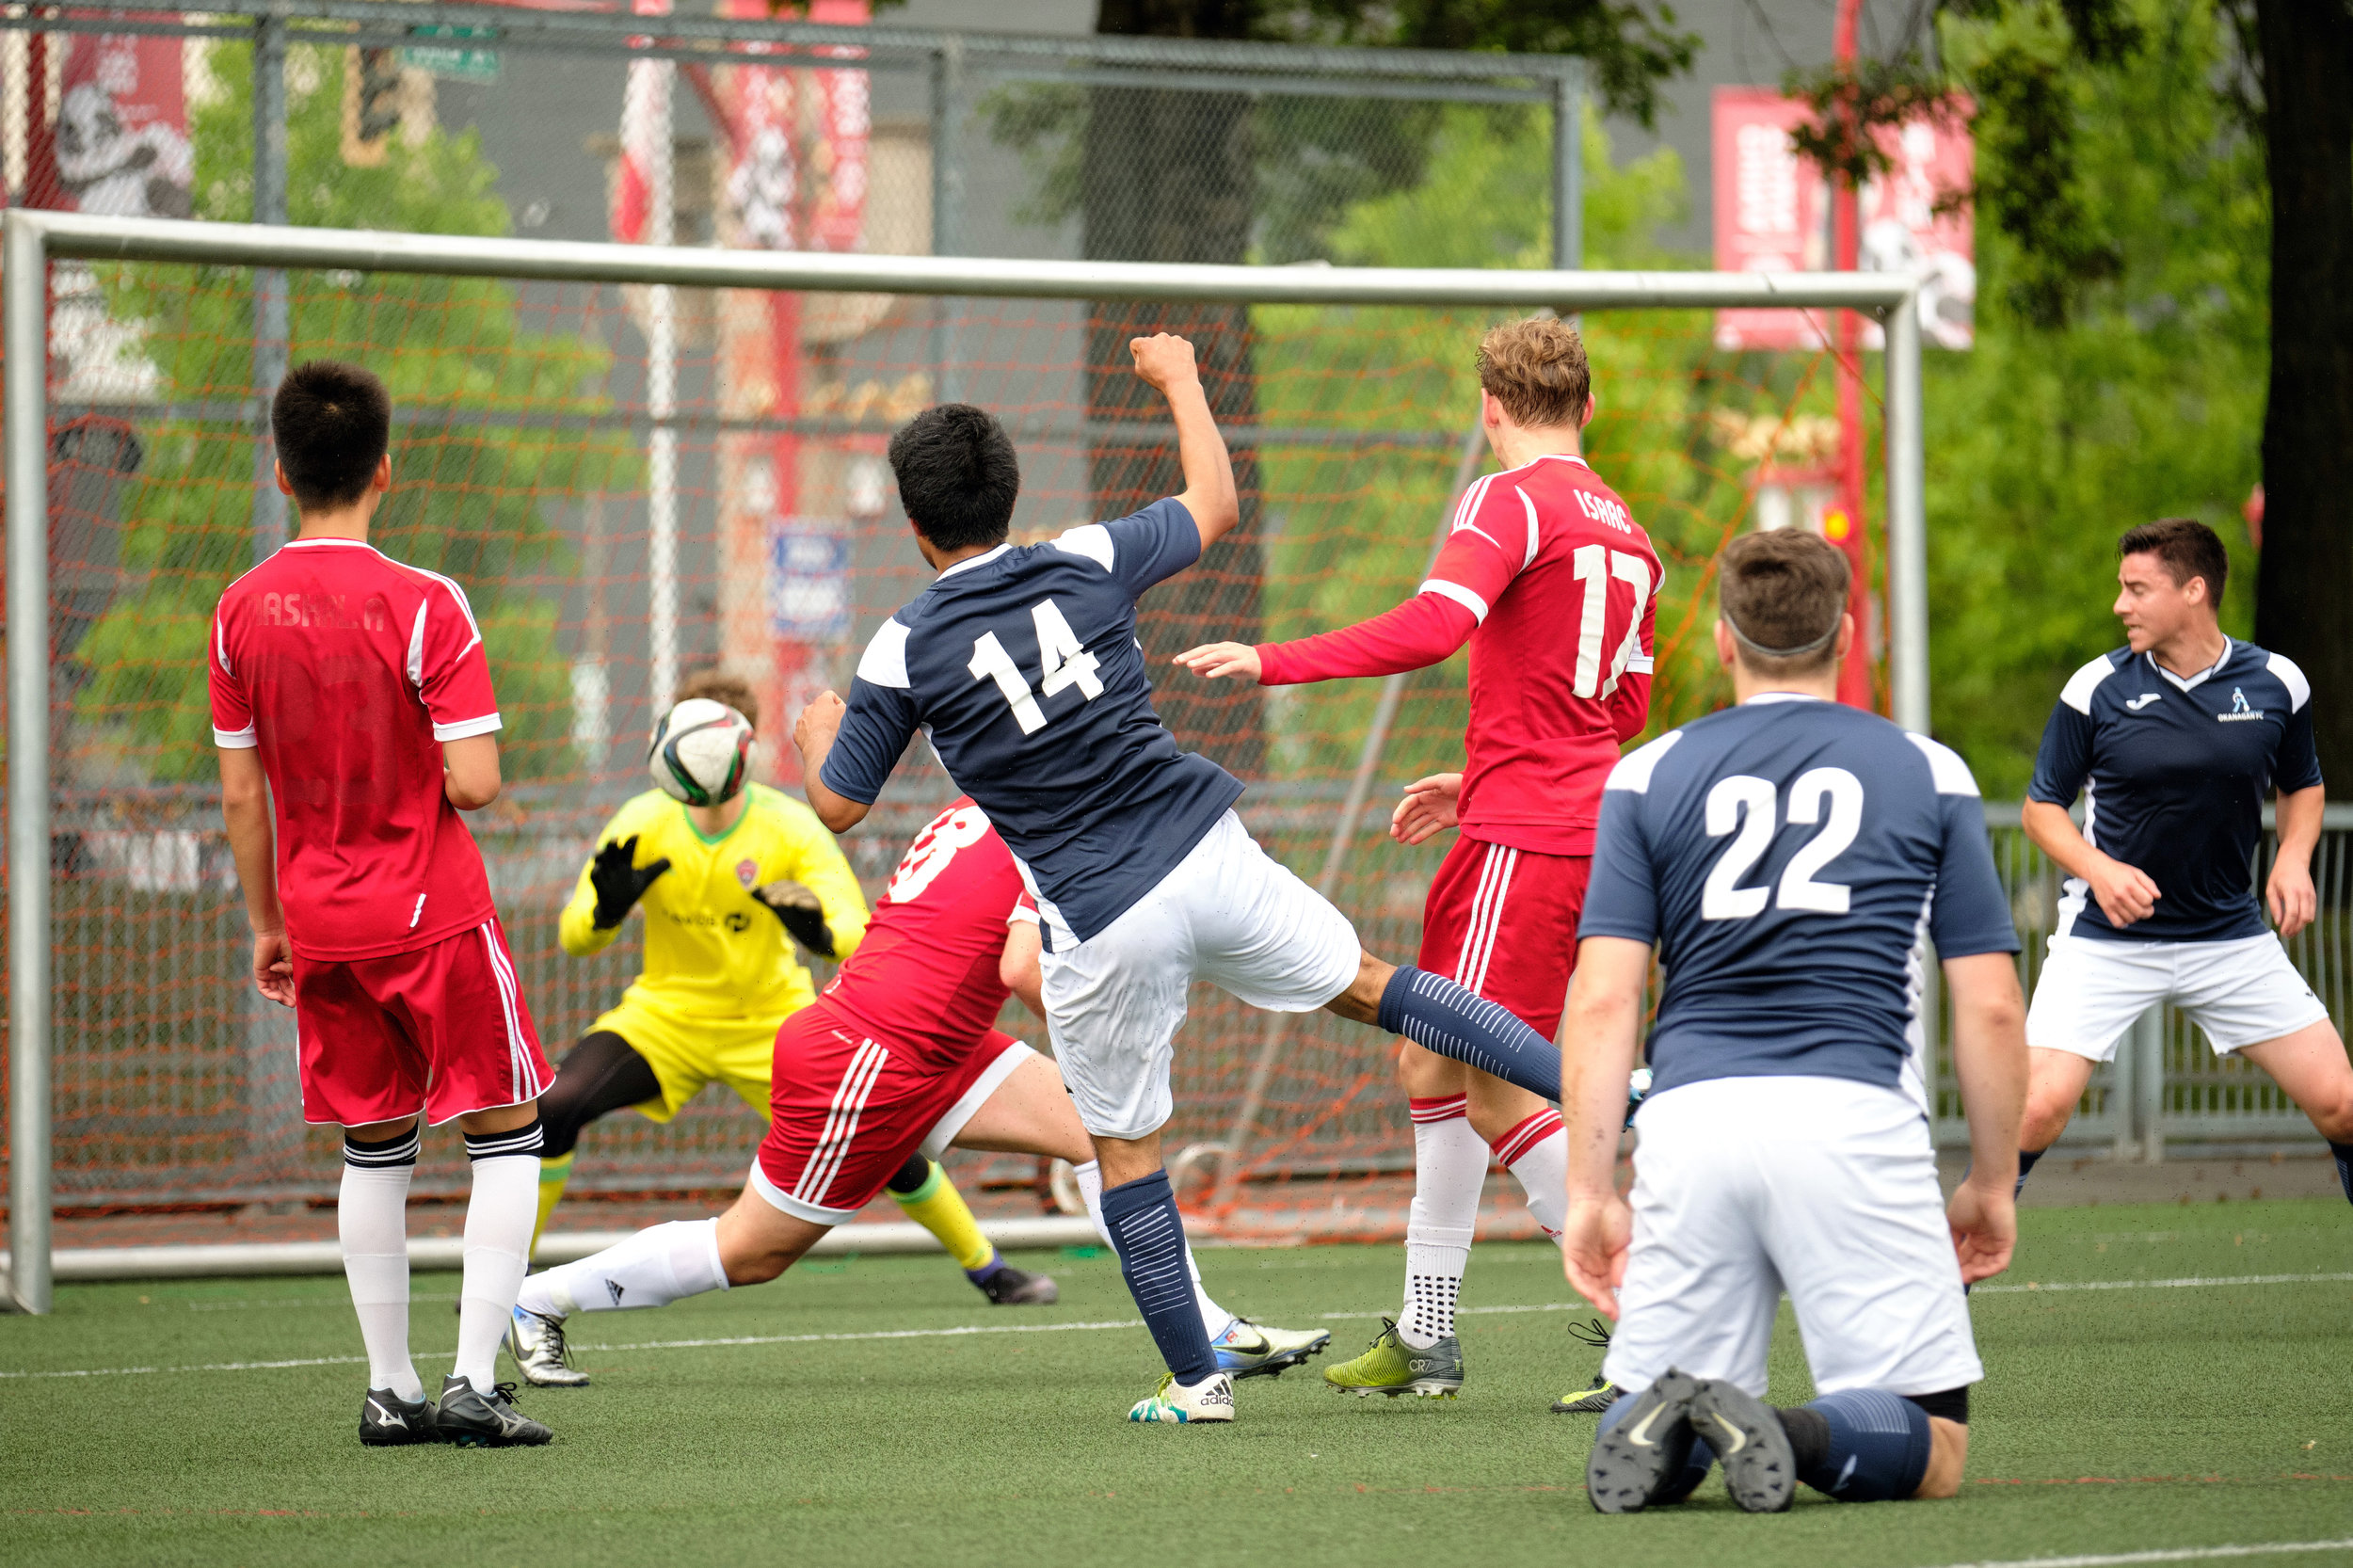 Pacific Coast Soccer League, Okanagan FC vs. Tigers FC, Vancouver. At Trillium Park Vancouver